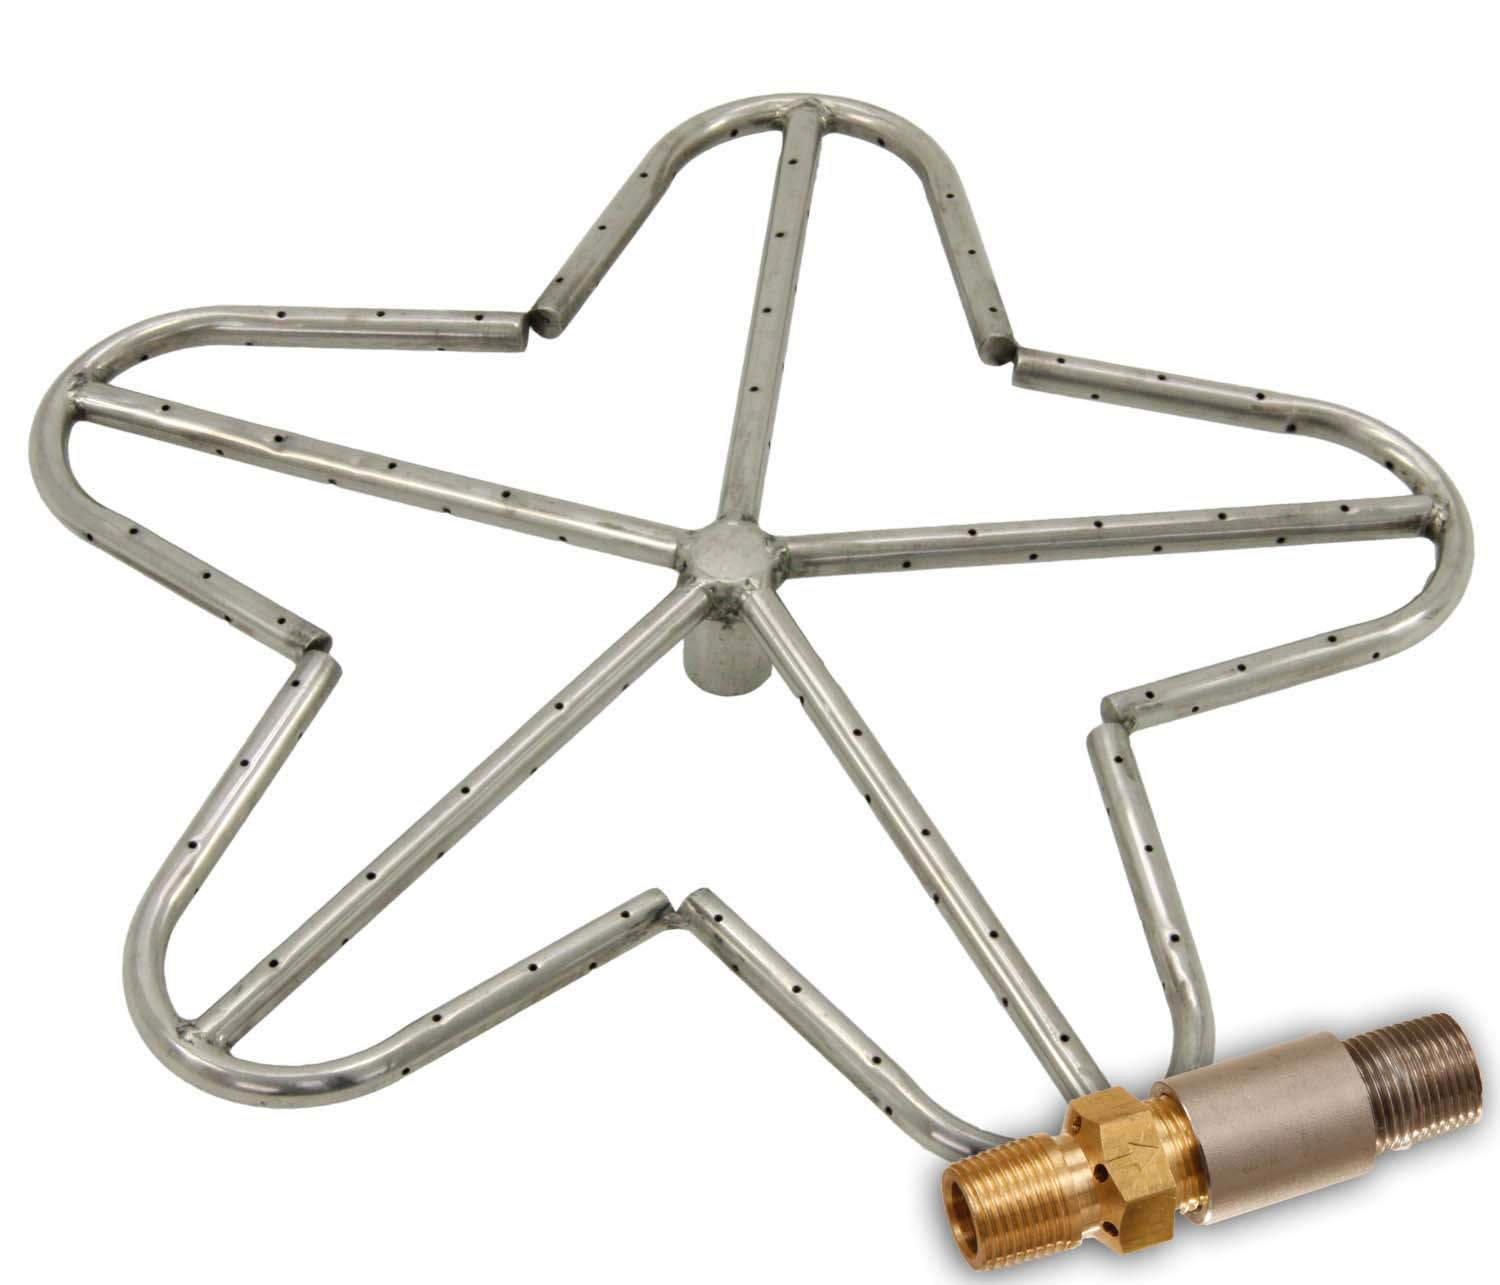 Hearth Products Controls (HPC) Penta Fire Pit Burner (PENTA18-LP), 18-Inch, Stainless Steel, Propane Gas